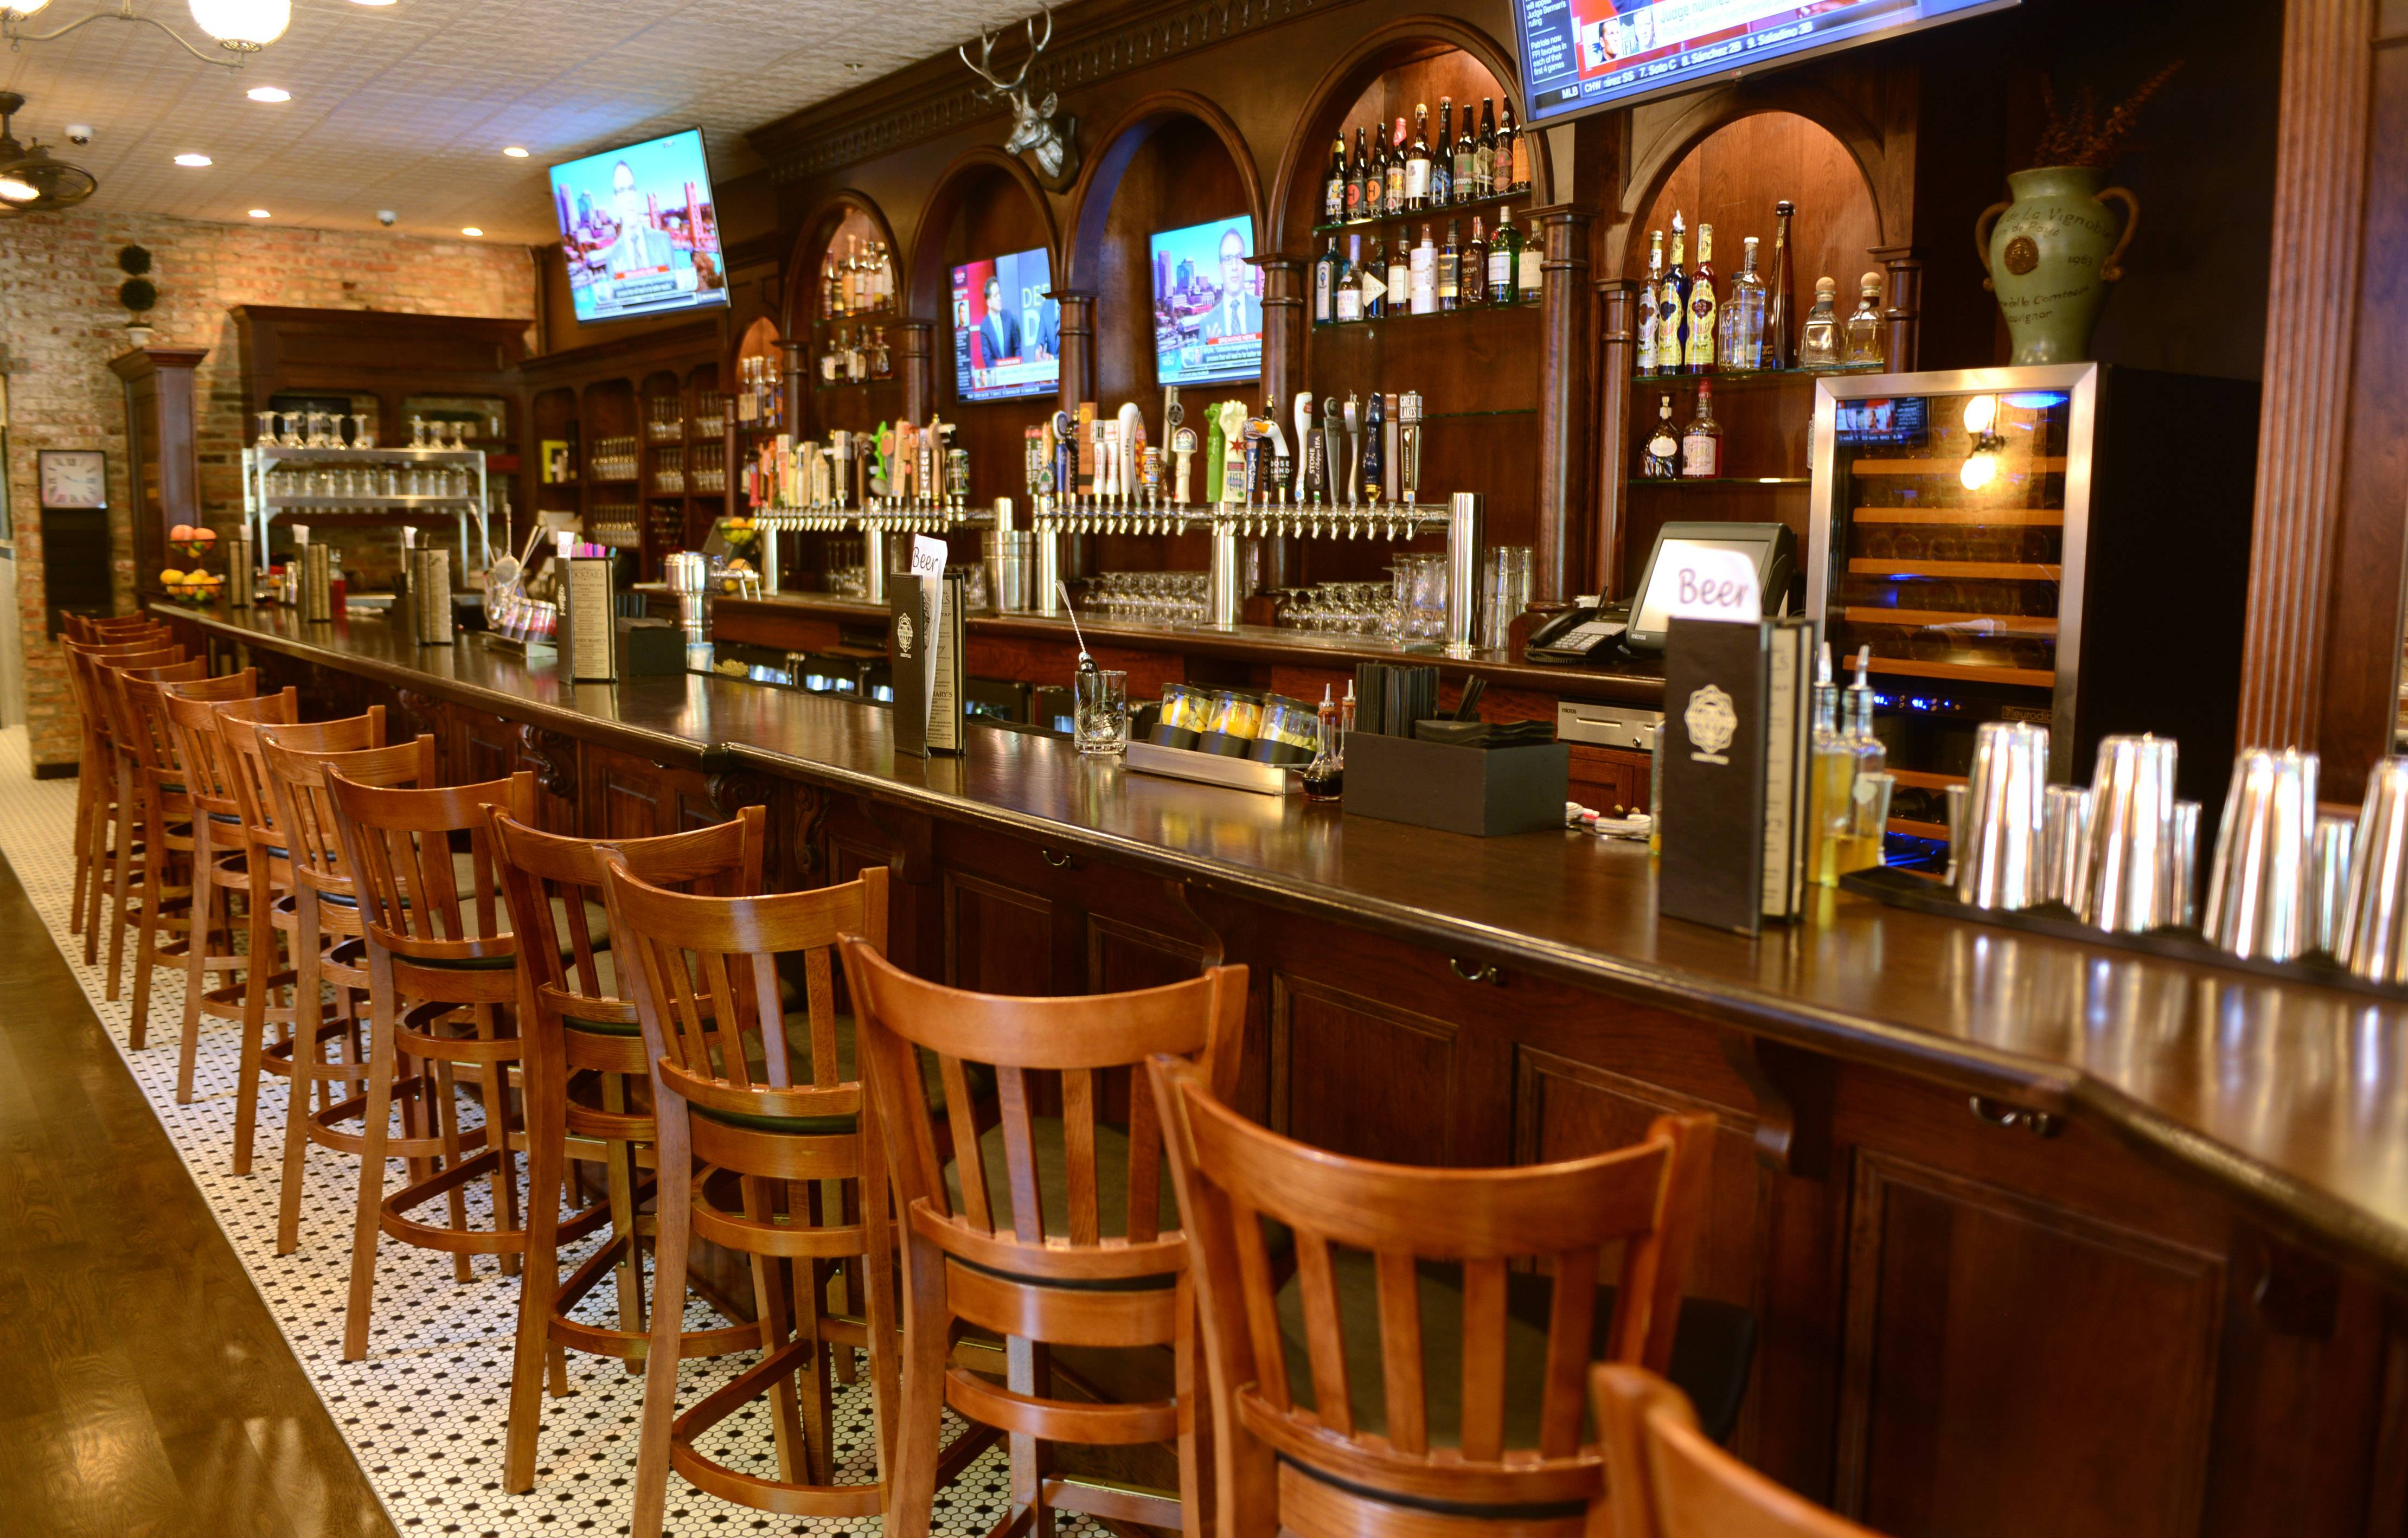 Start you meal with a libation at the bar on the main level of O'Toole's.